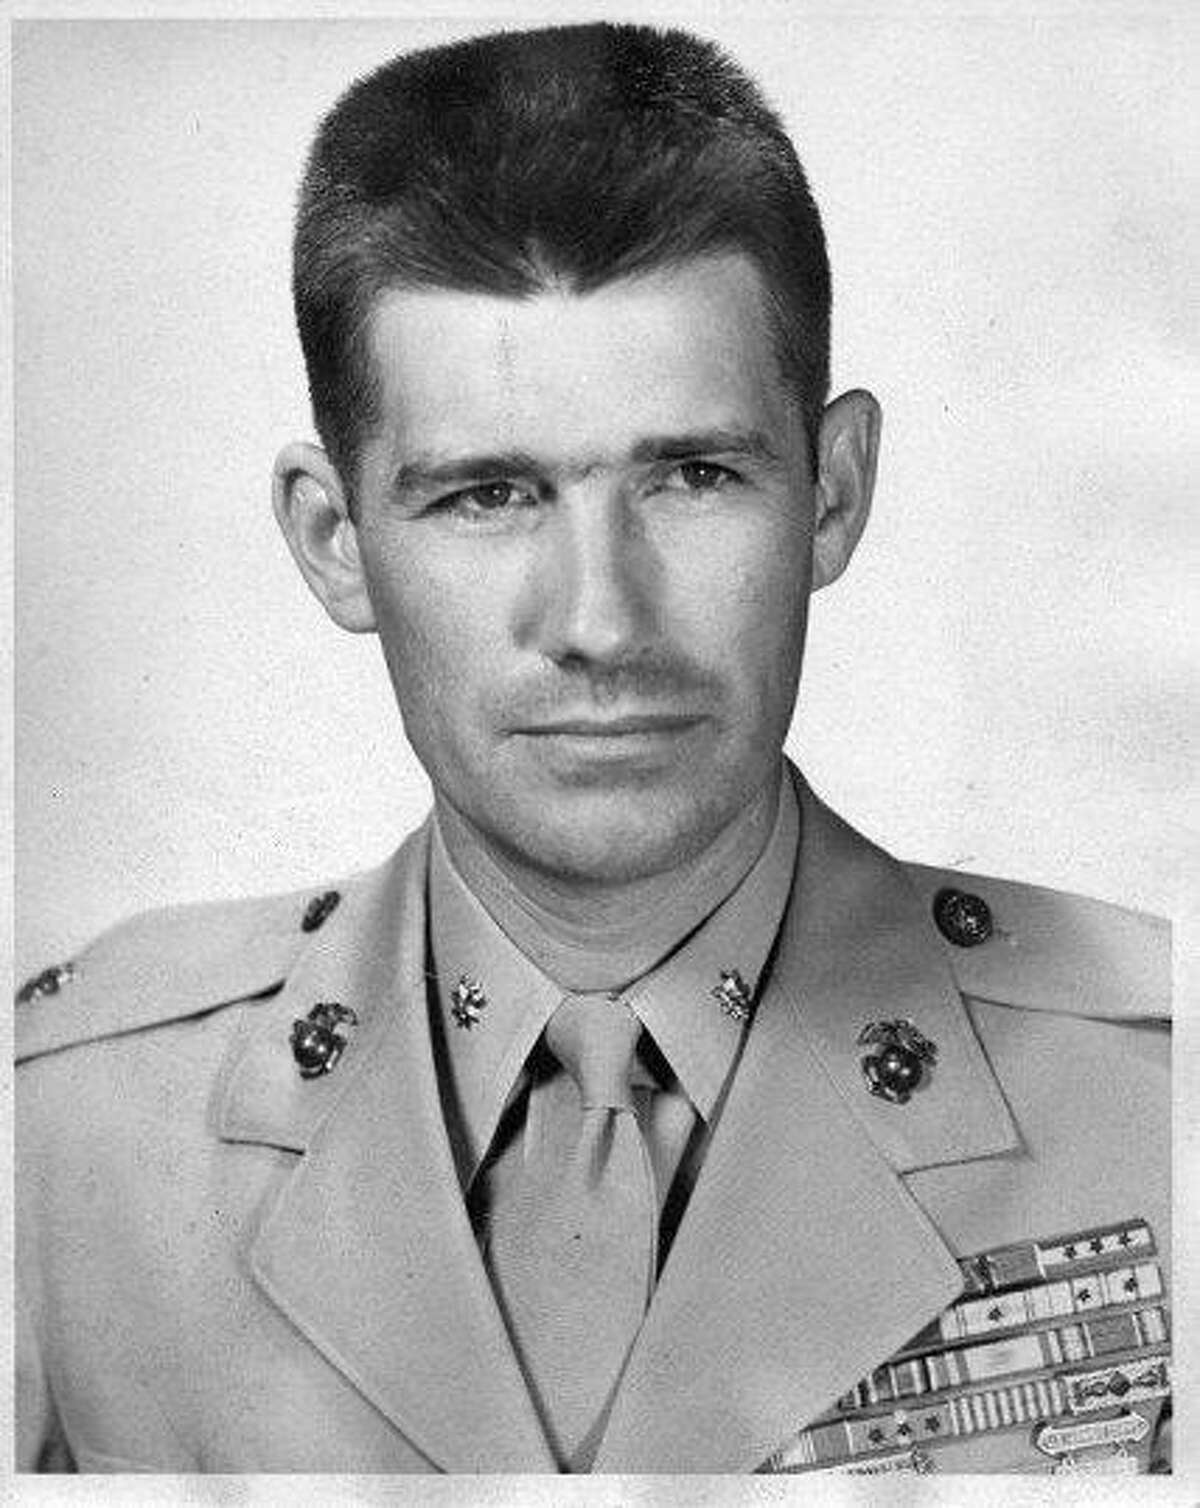 Lt. Col. John R. Stevens just before his retirement from the Marine Corps in 1962.